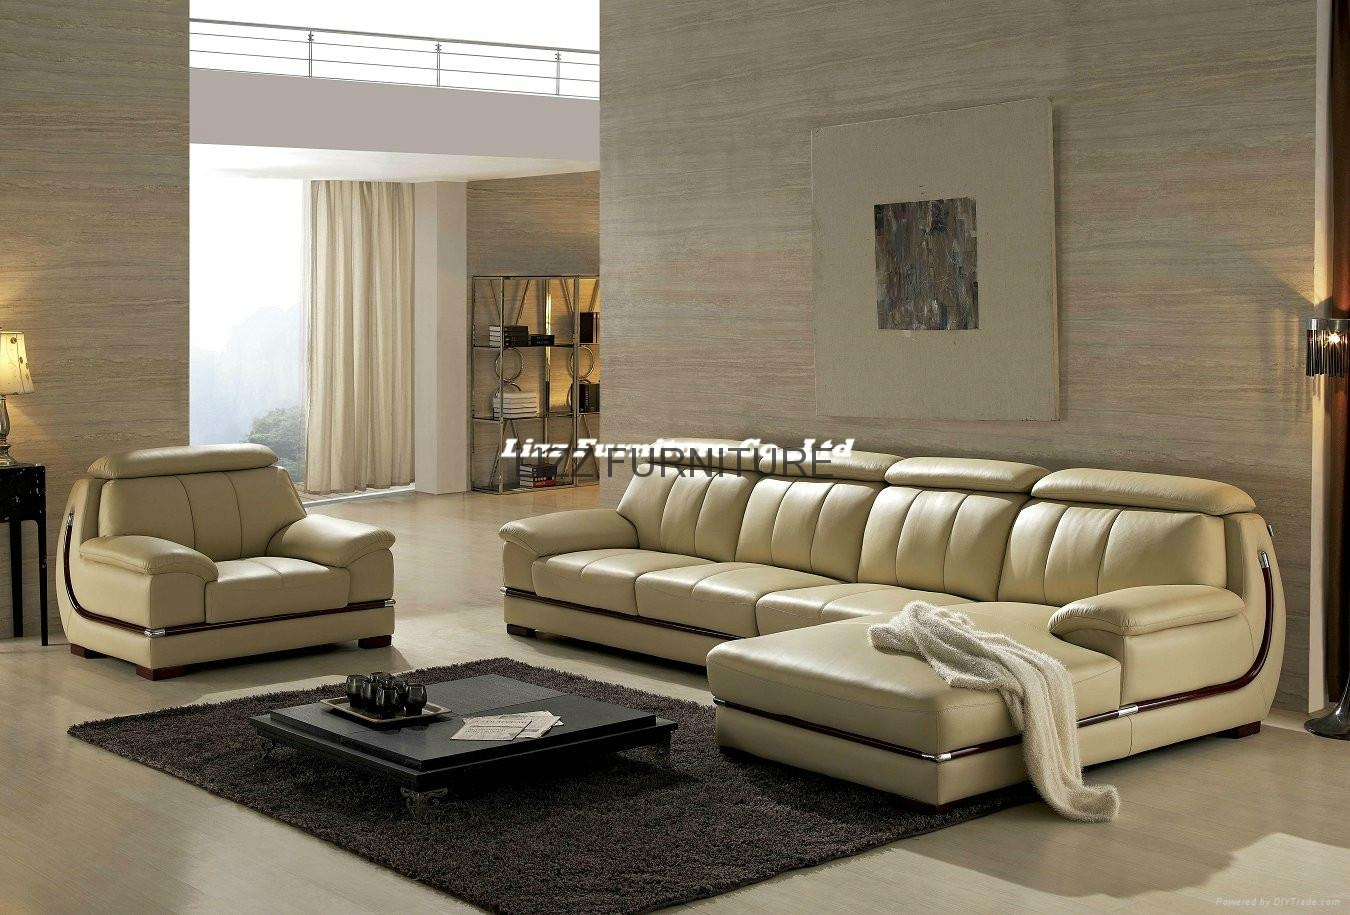 Living room l shape leather sofa set lz063 lizz china manufacturer living room furniture Living rooms with leather sofas